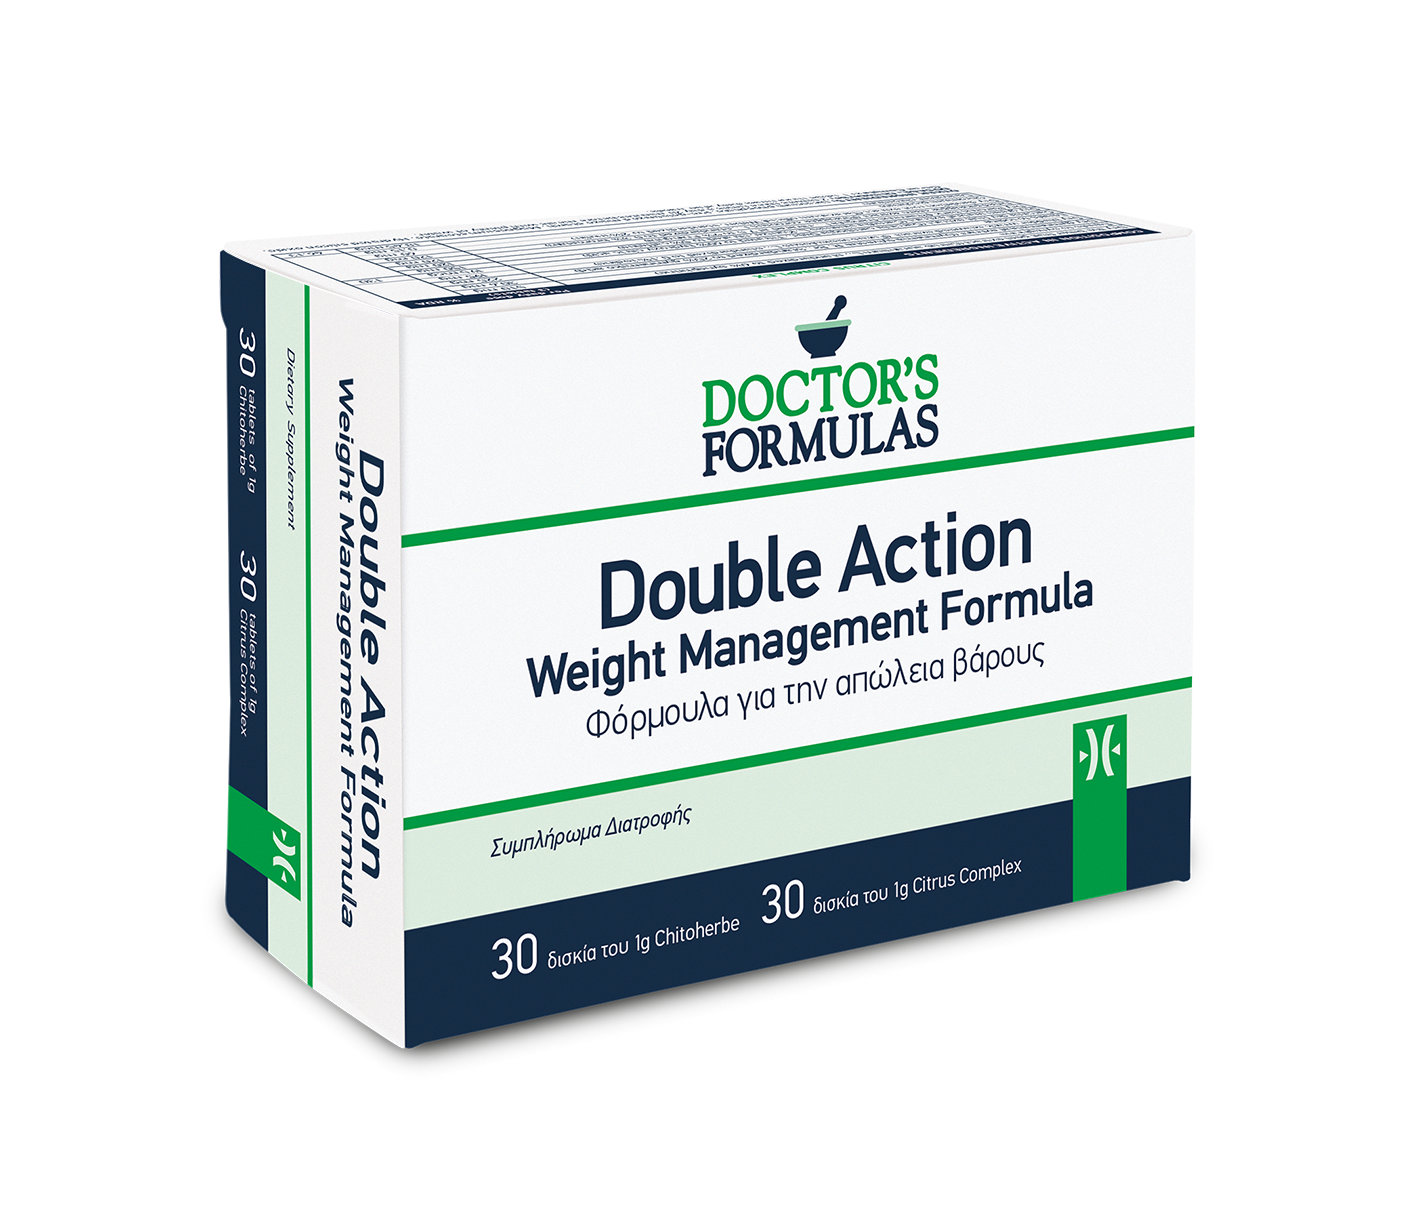 Εικόνα DOUBLE ACTION WEIGHT MANAGEMENT FORMULA